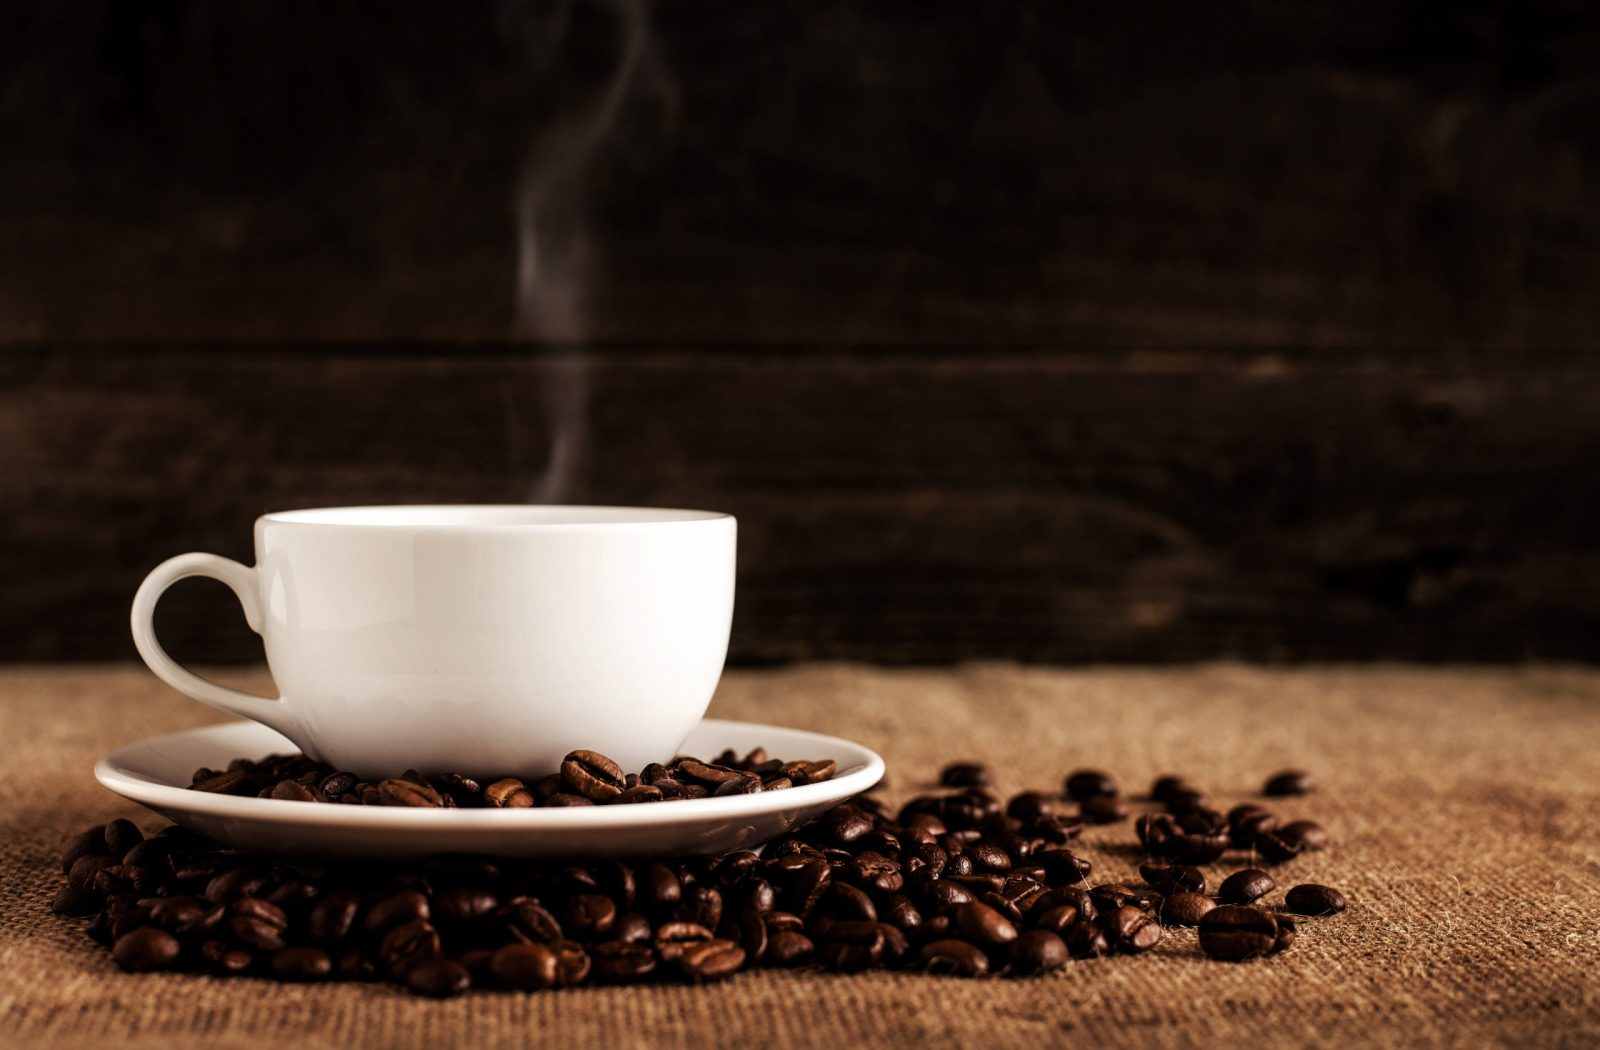 Coffee in a cup and saucer with coffee beans surrounding